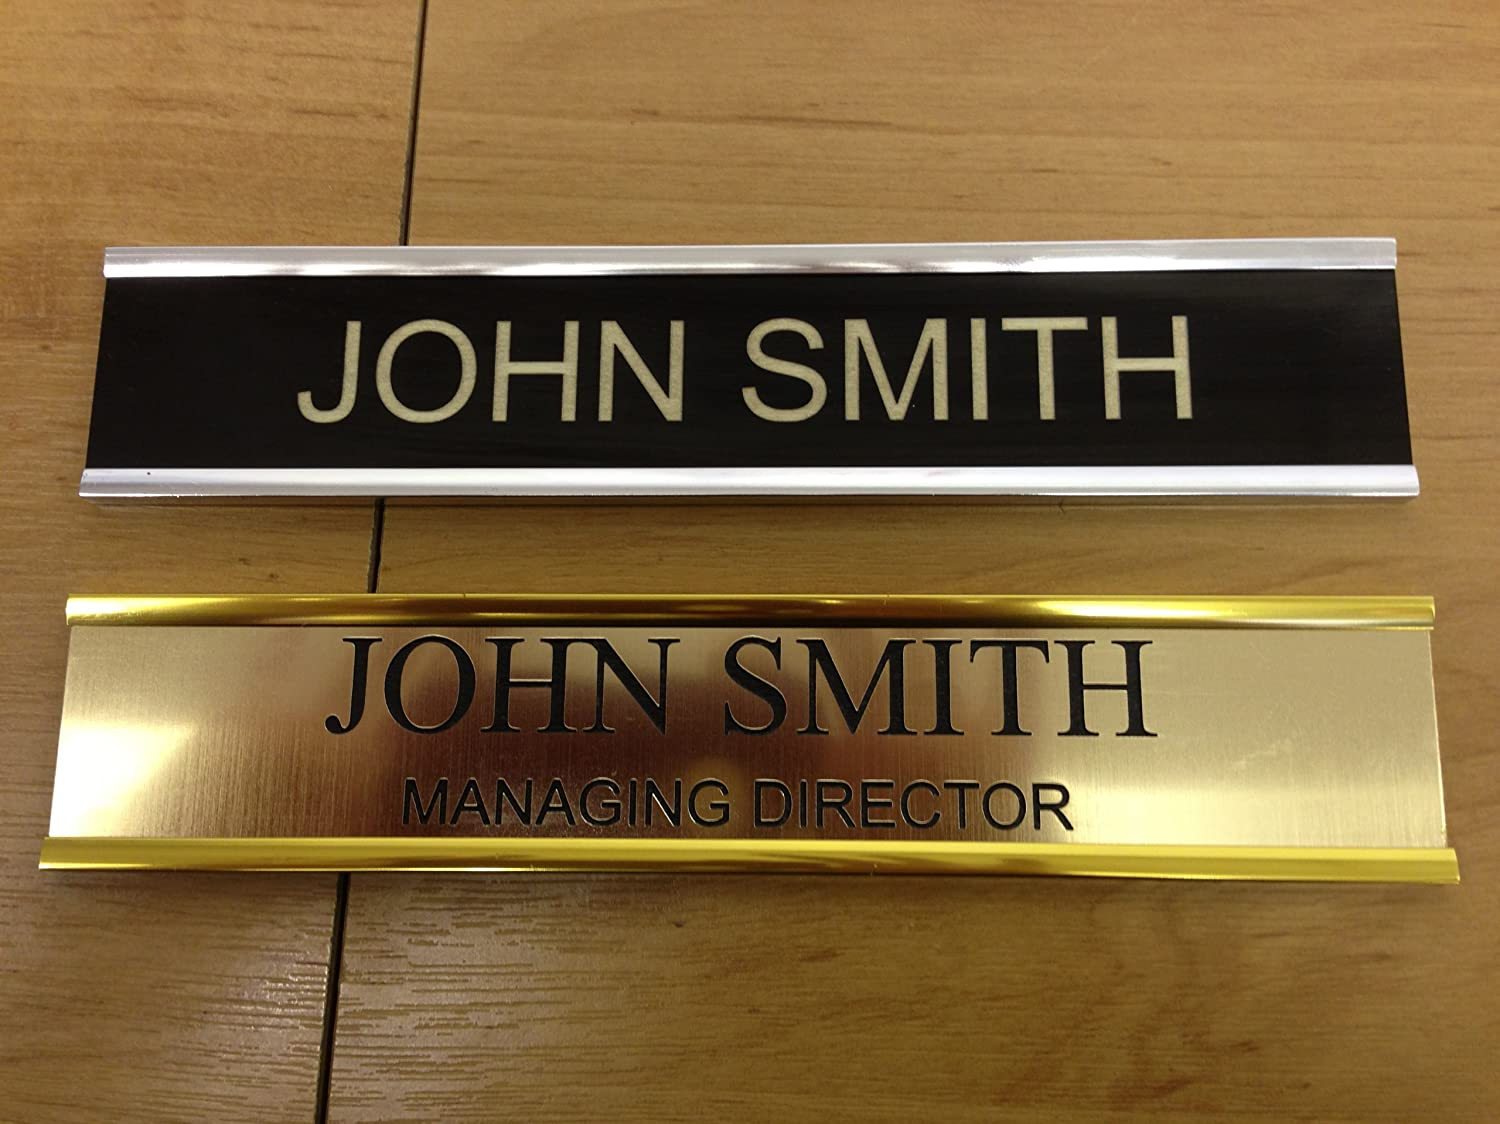 DOOR PERSONALISED NAME PLATE HOLDERS SILVER EFFECT METAL WITH ENGRAVED LAMINATE INSERT OFFICE FACTORY BUSINESS (BLACK 203 x 37mm 8 x 1 1/2 ) Amazon.co.uk ... & DOOR PERSONALISED NAME PLATE HOLDERS SILVER EFFECT METAL WITH ... pezcame.com